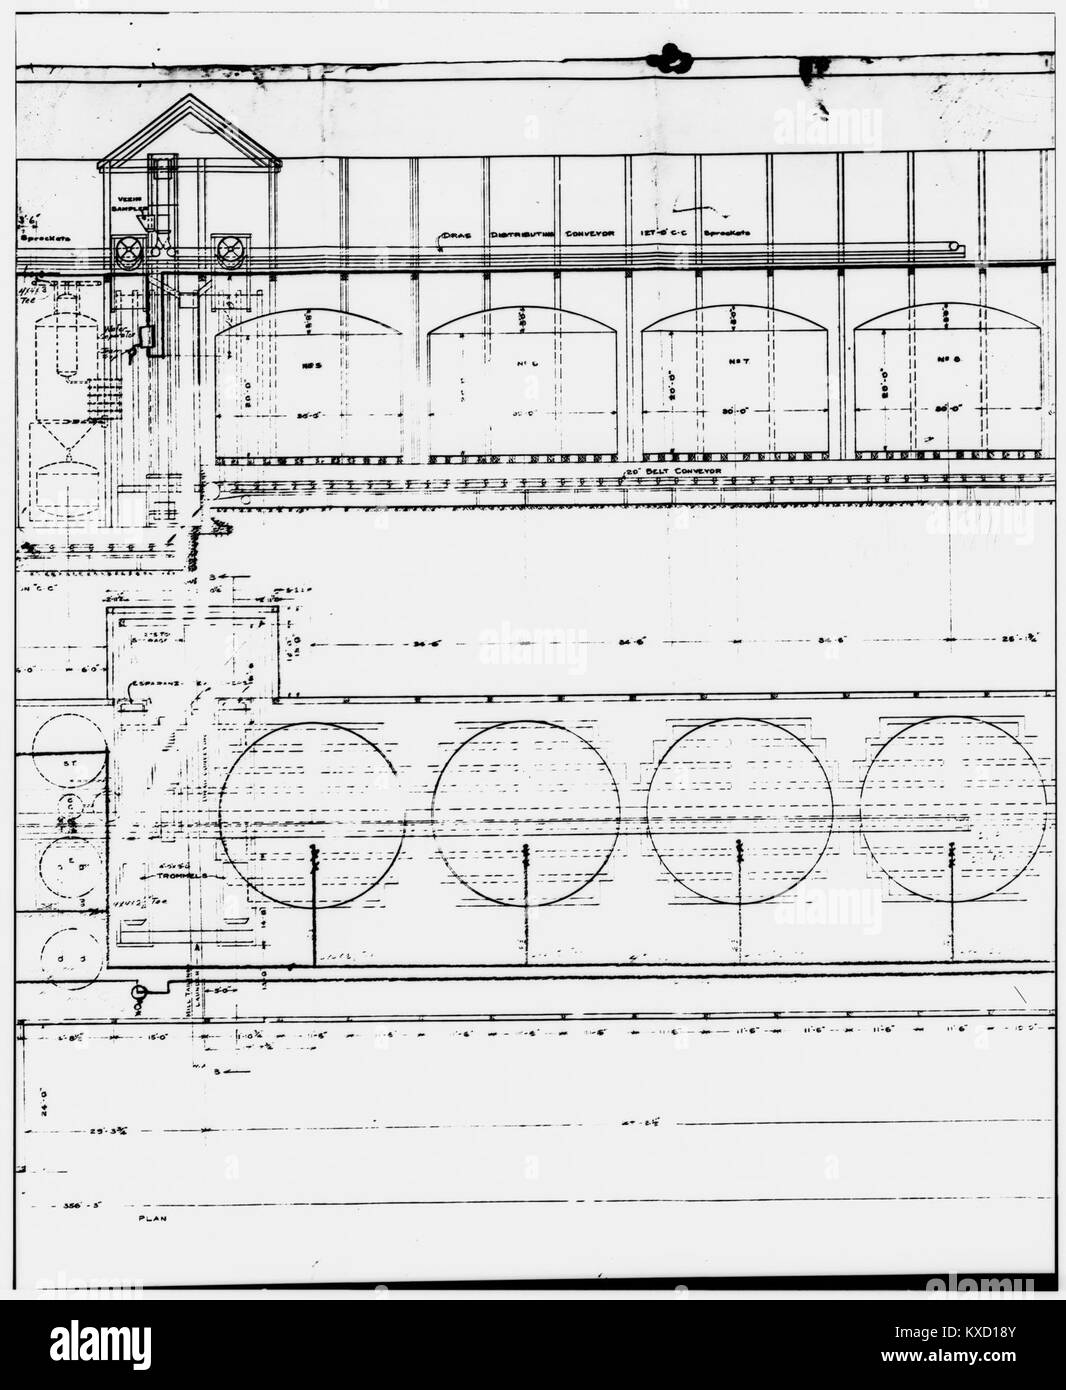 49. PHOTOCOPY OF DRAWING, AMMONIA LEACHING PLANT - Kennecott Copper Corporation, On Copper River ^ Northwestern - Stock Image